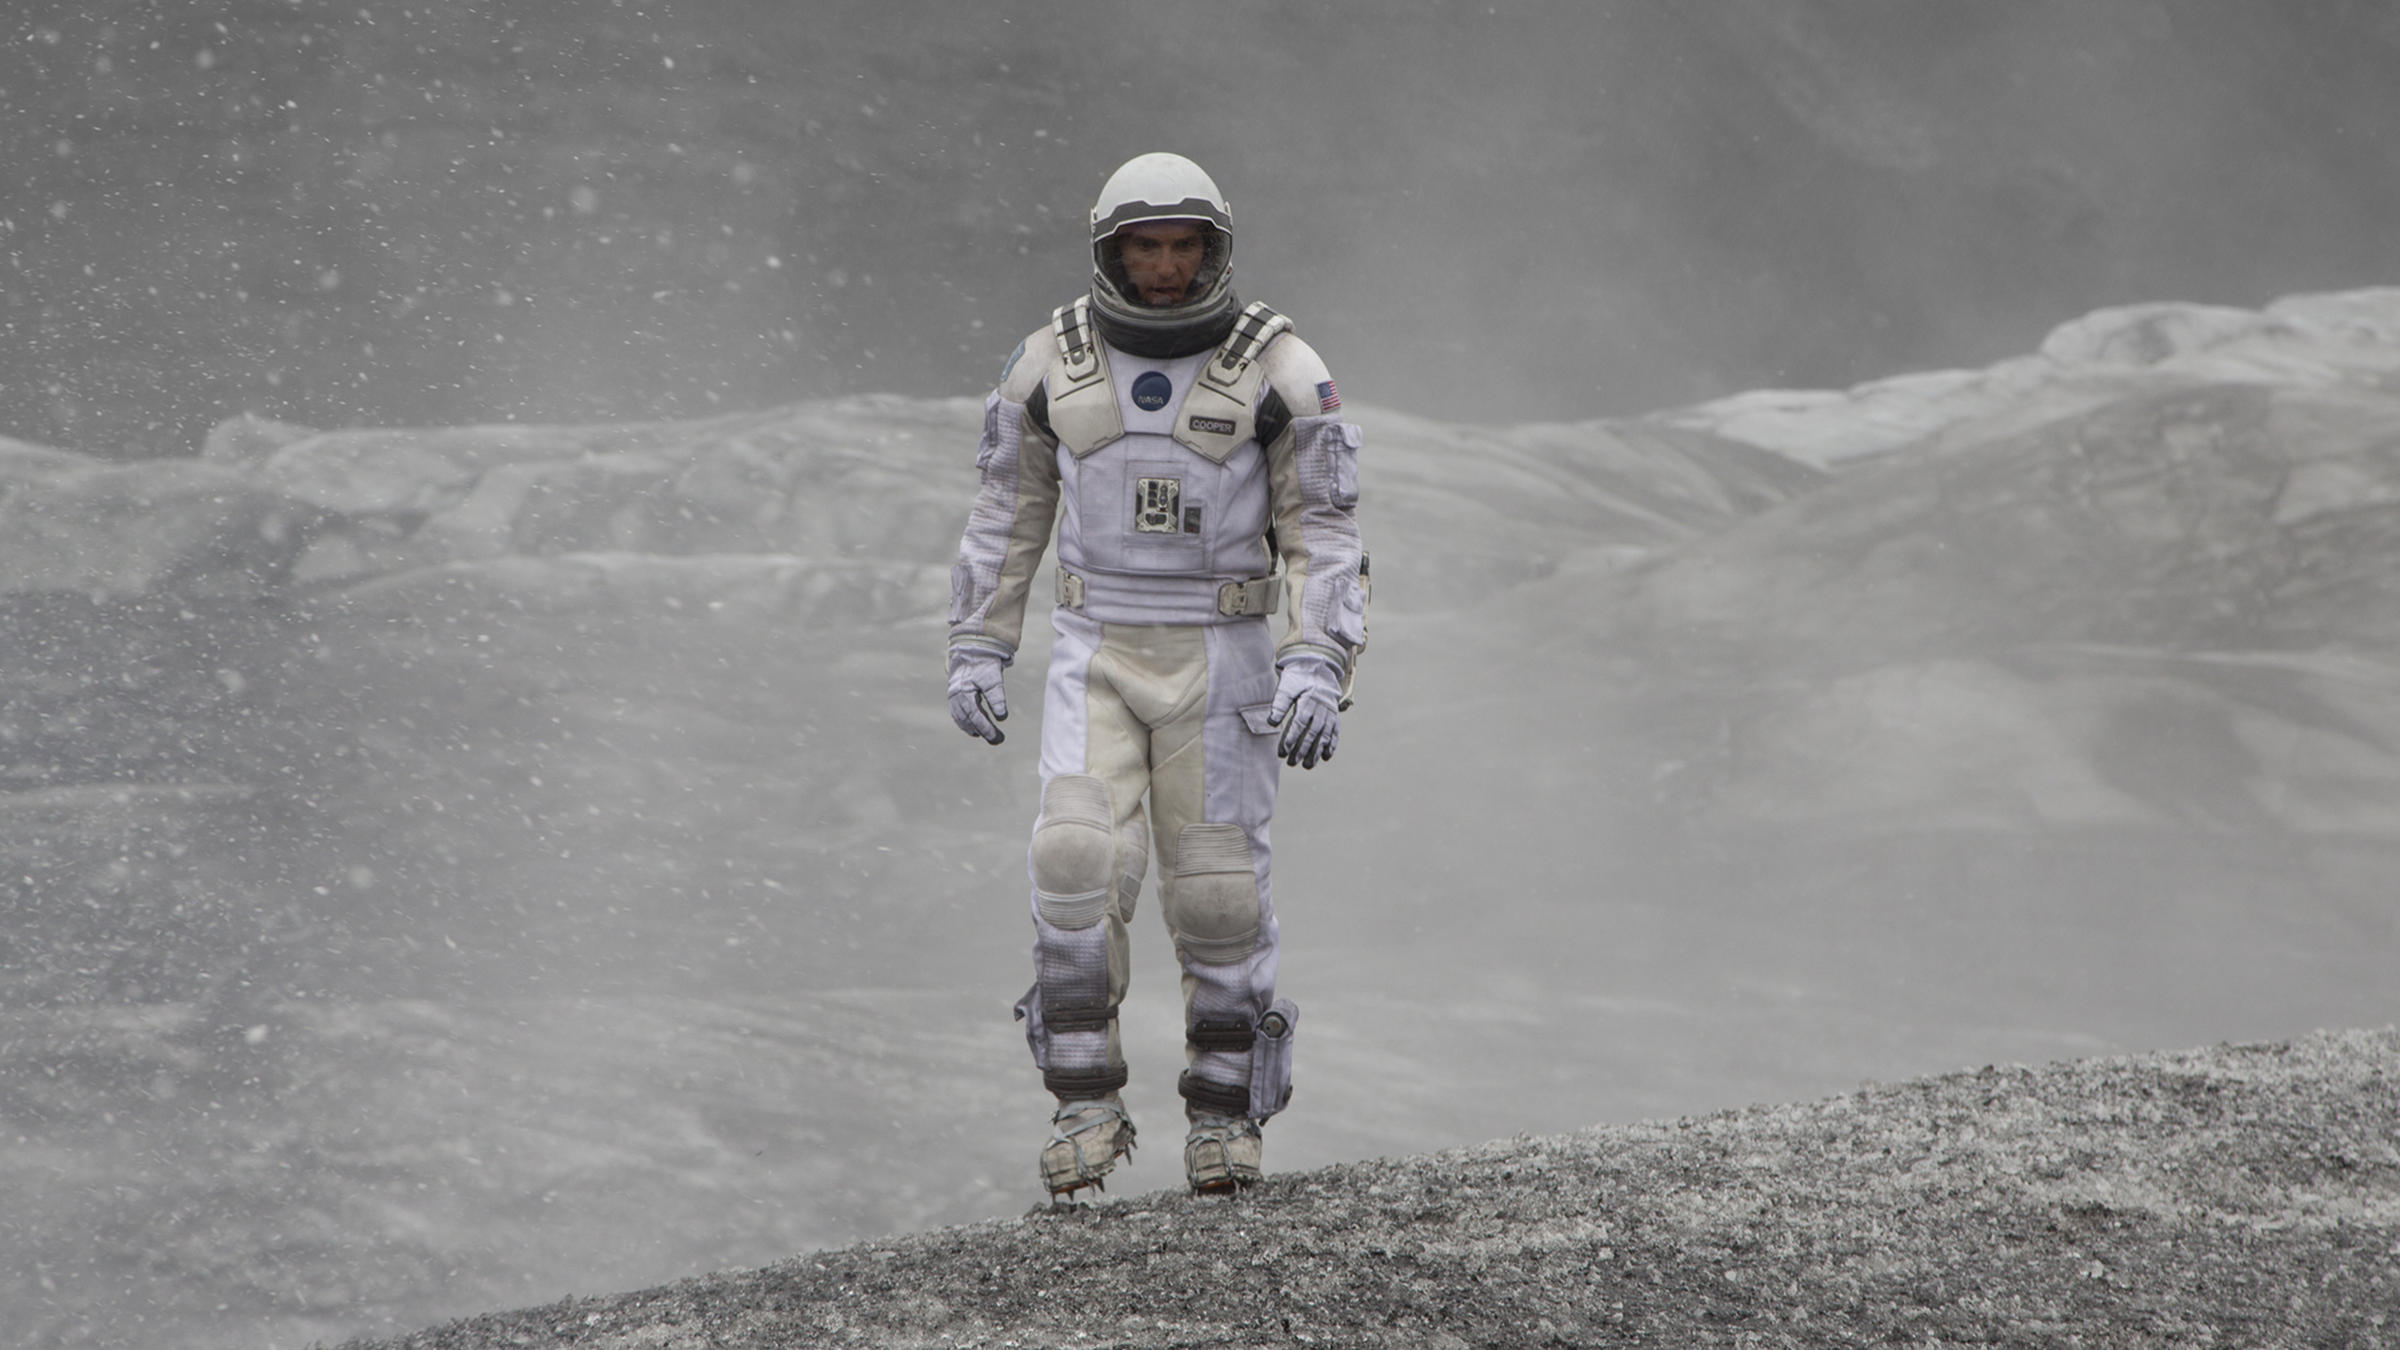 A still from the movie Interstellar